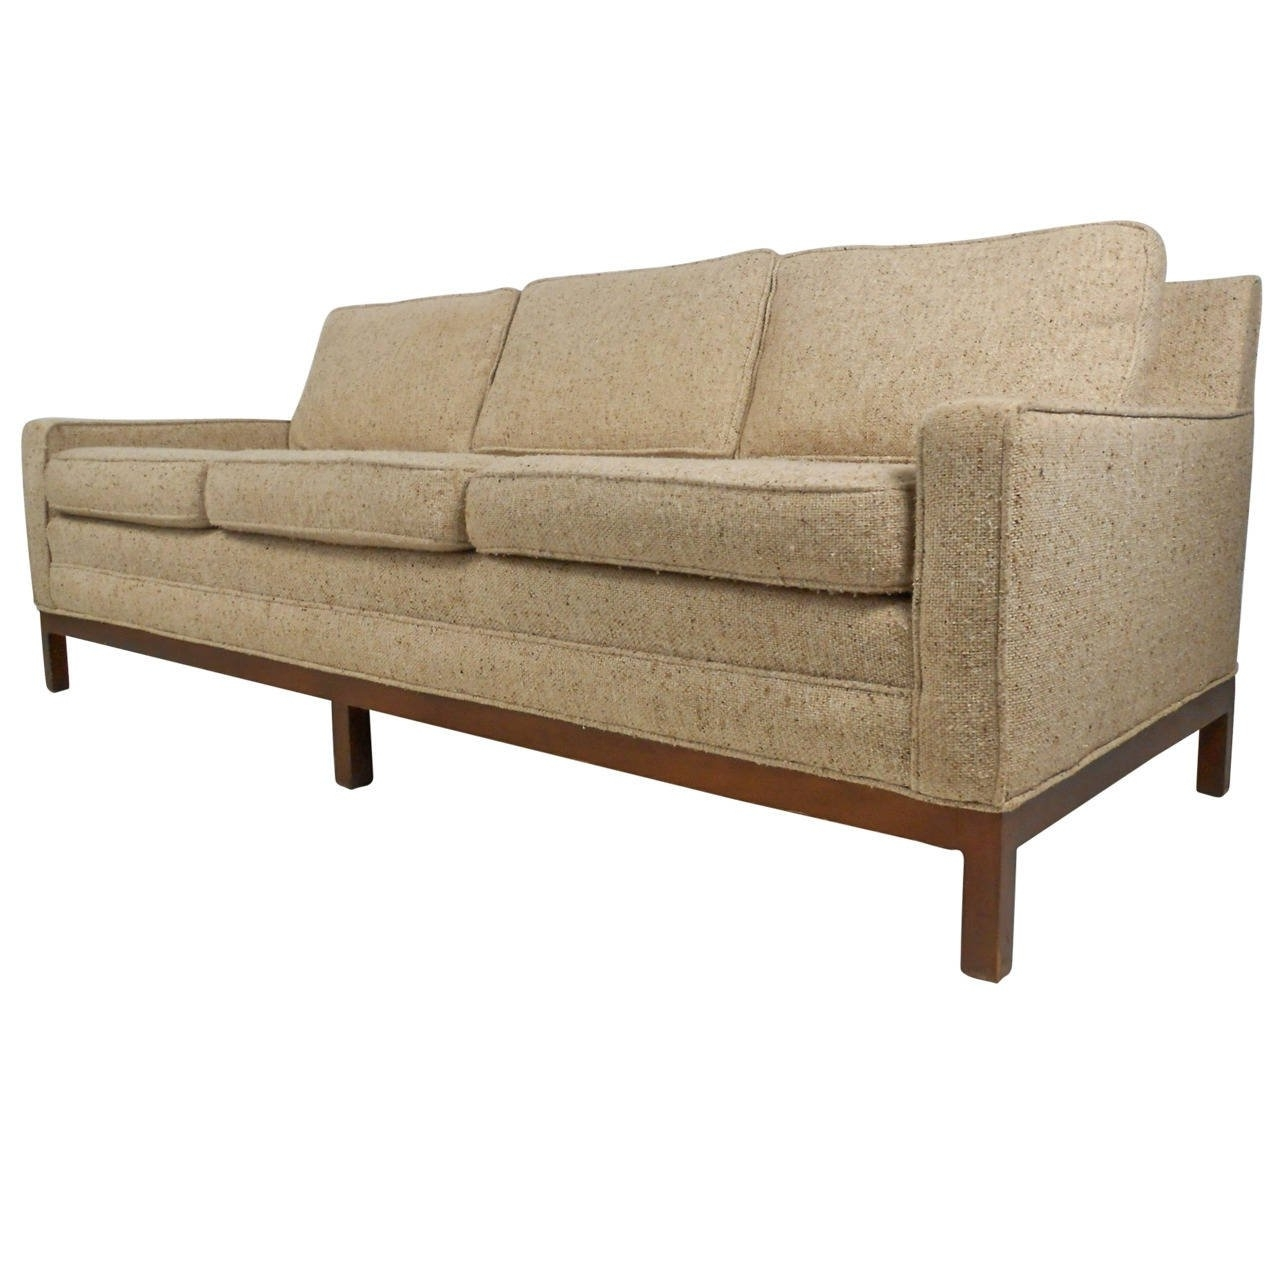 Recent Florence Sofas And Loveseats Intended For Vintage Modern Sofa After Florence Knoll For Sale At 1stdibs (View 12 of 20)